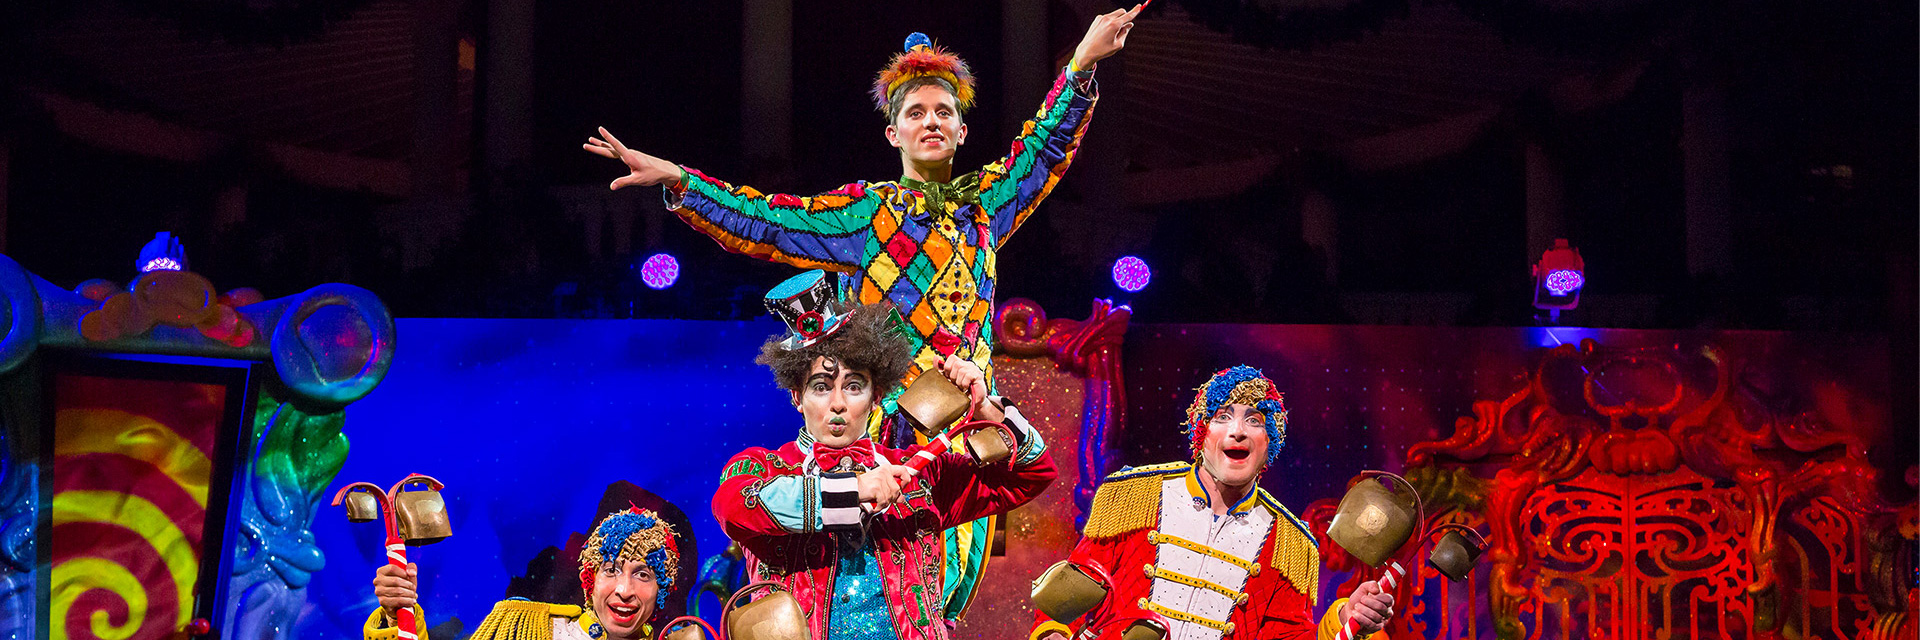 Cirque Dreams Unwrapped Stage Show in Kissimmee Hotel